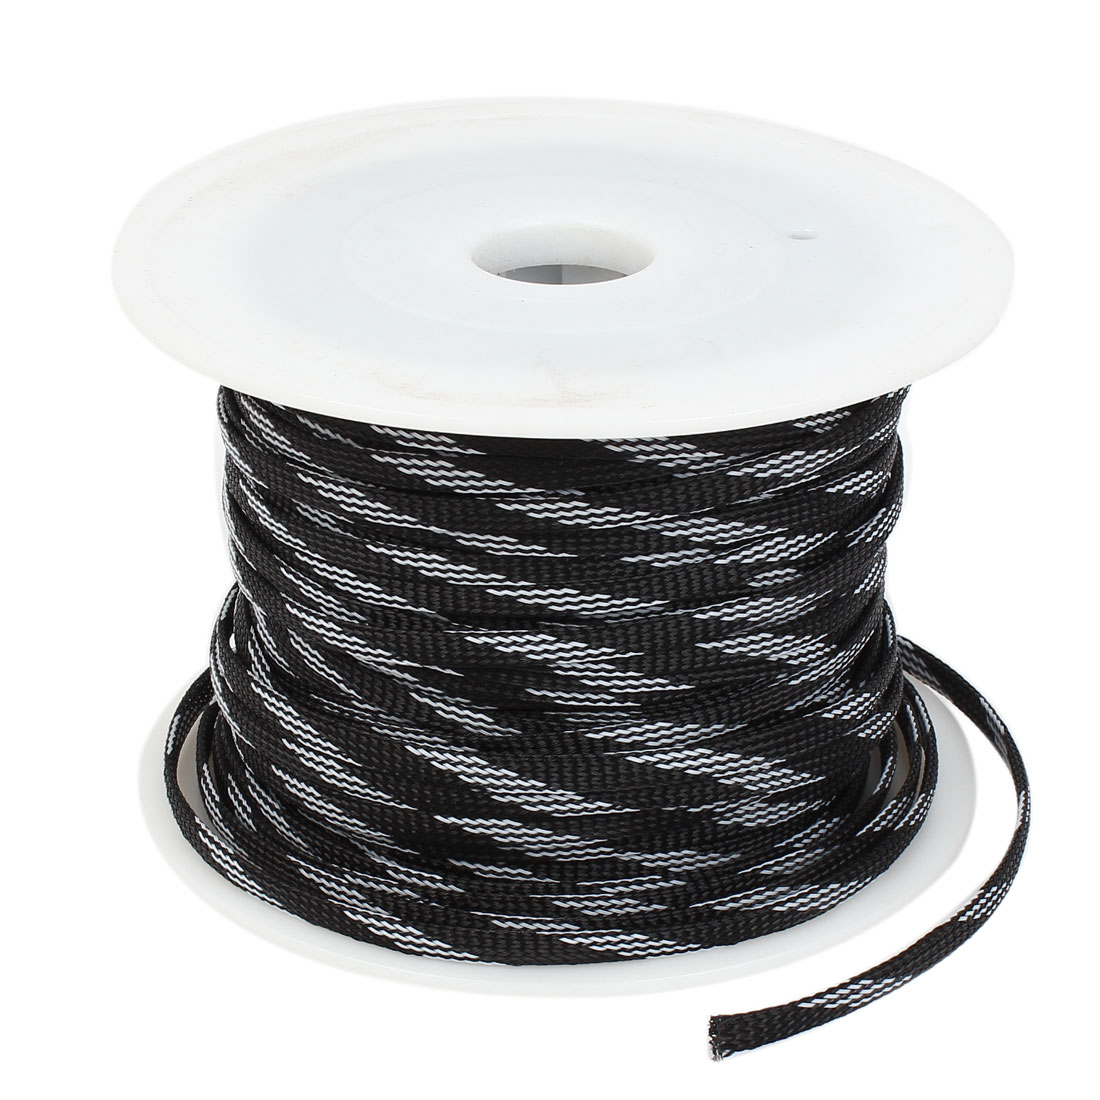 Auto Audio Sleeving Braided Polyester Cable Cover Protector 100m Long 7mm Width